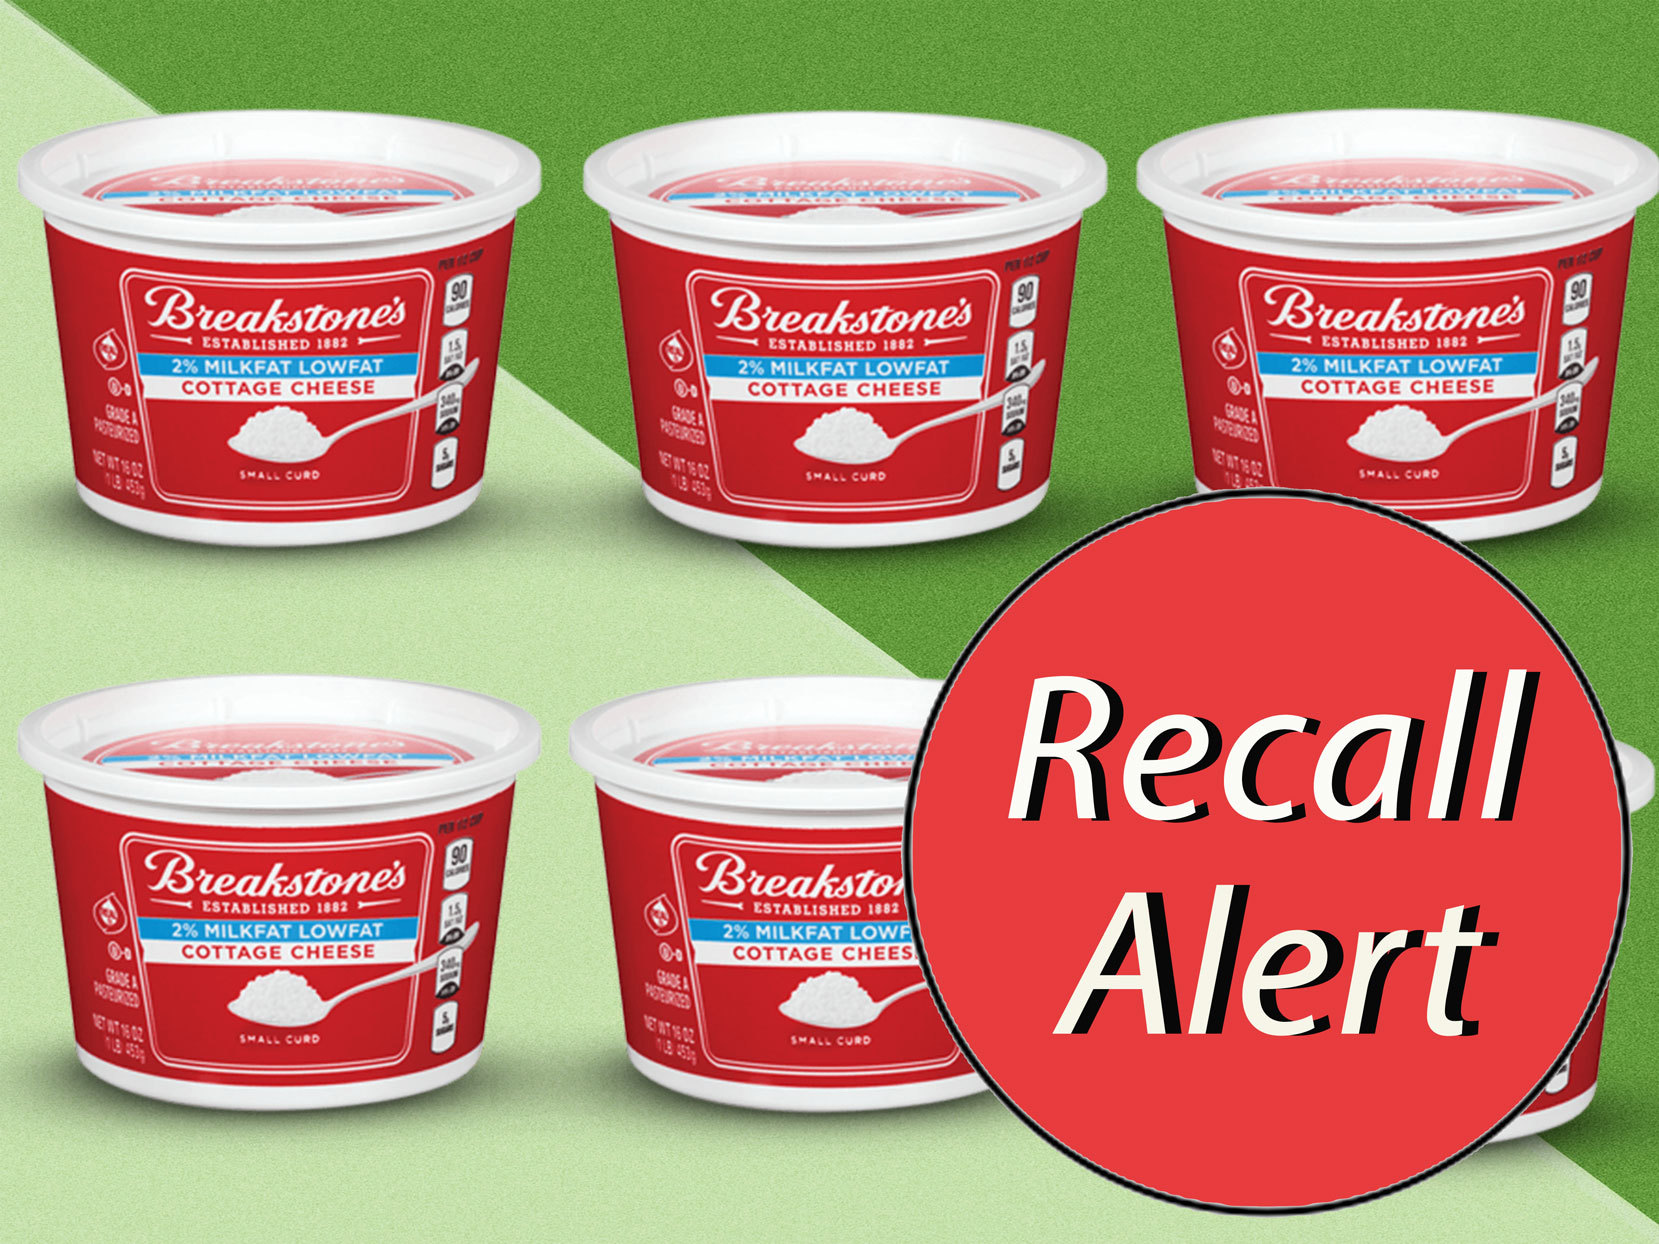 Tubs of Breakstone's Cottage Cheese with Recall Alert sticker overlaying image